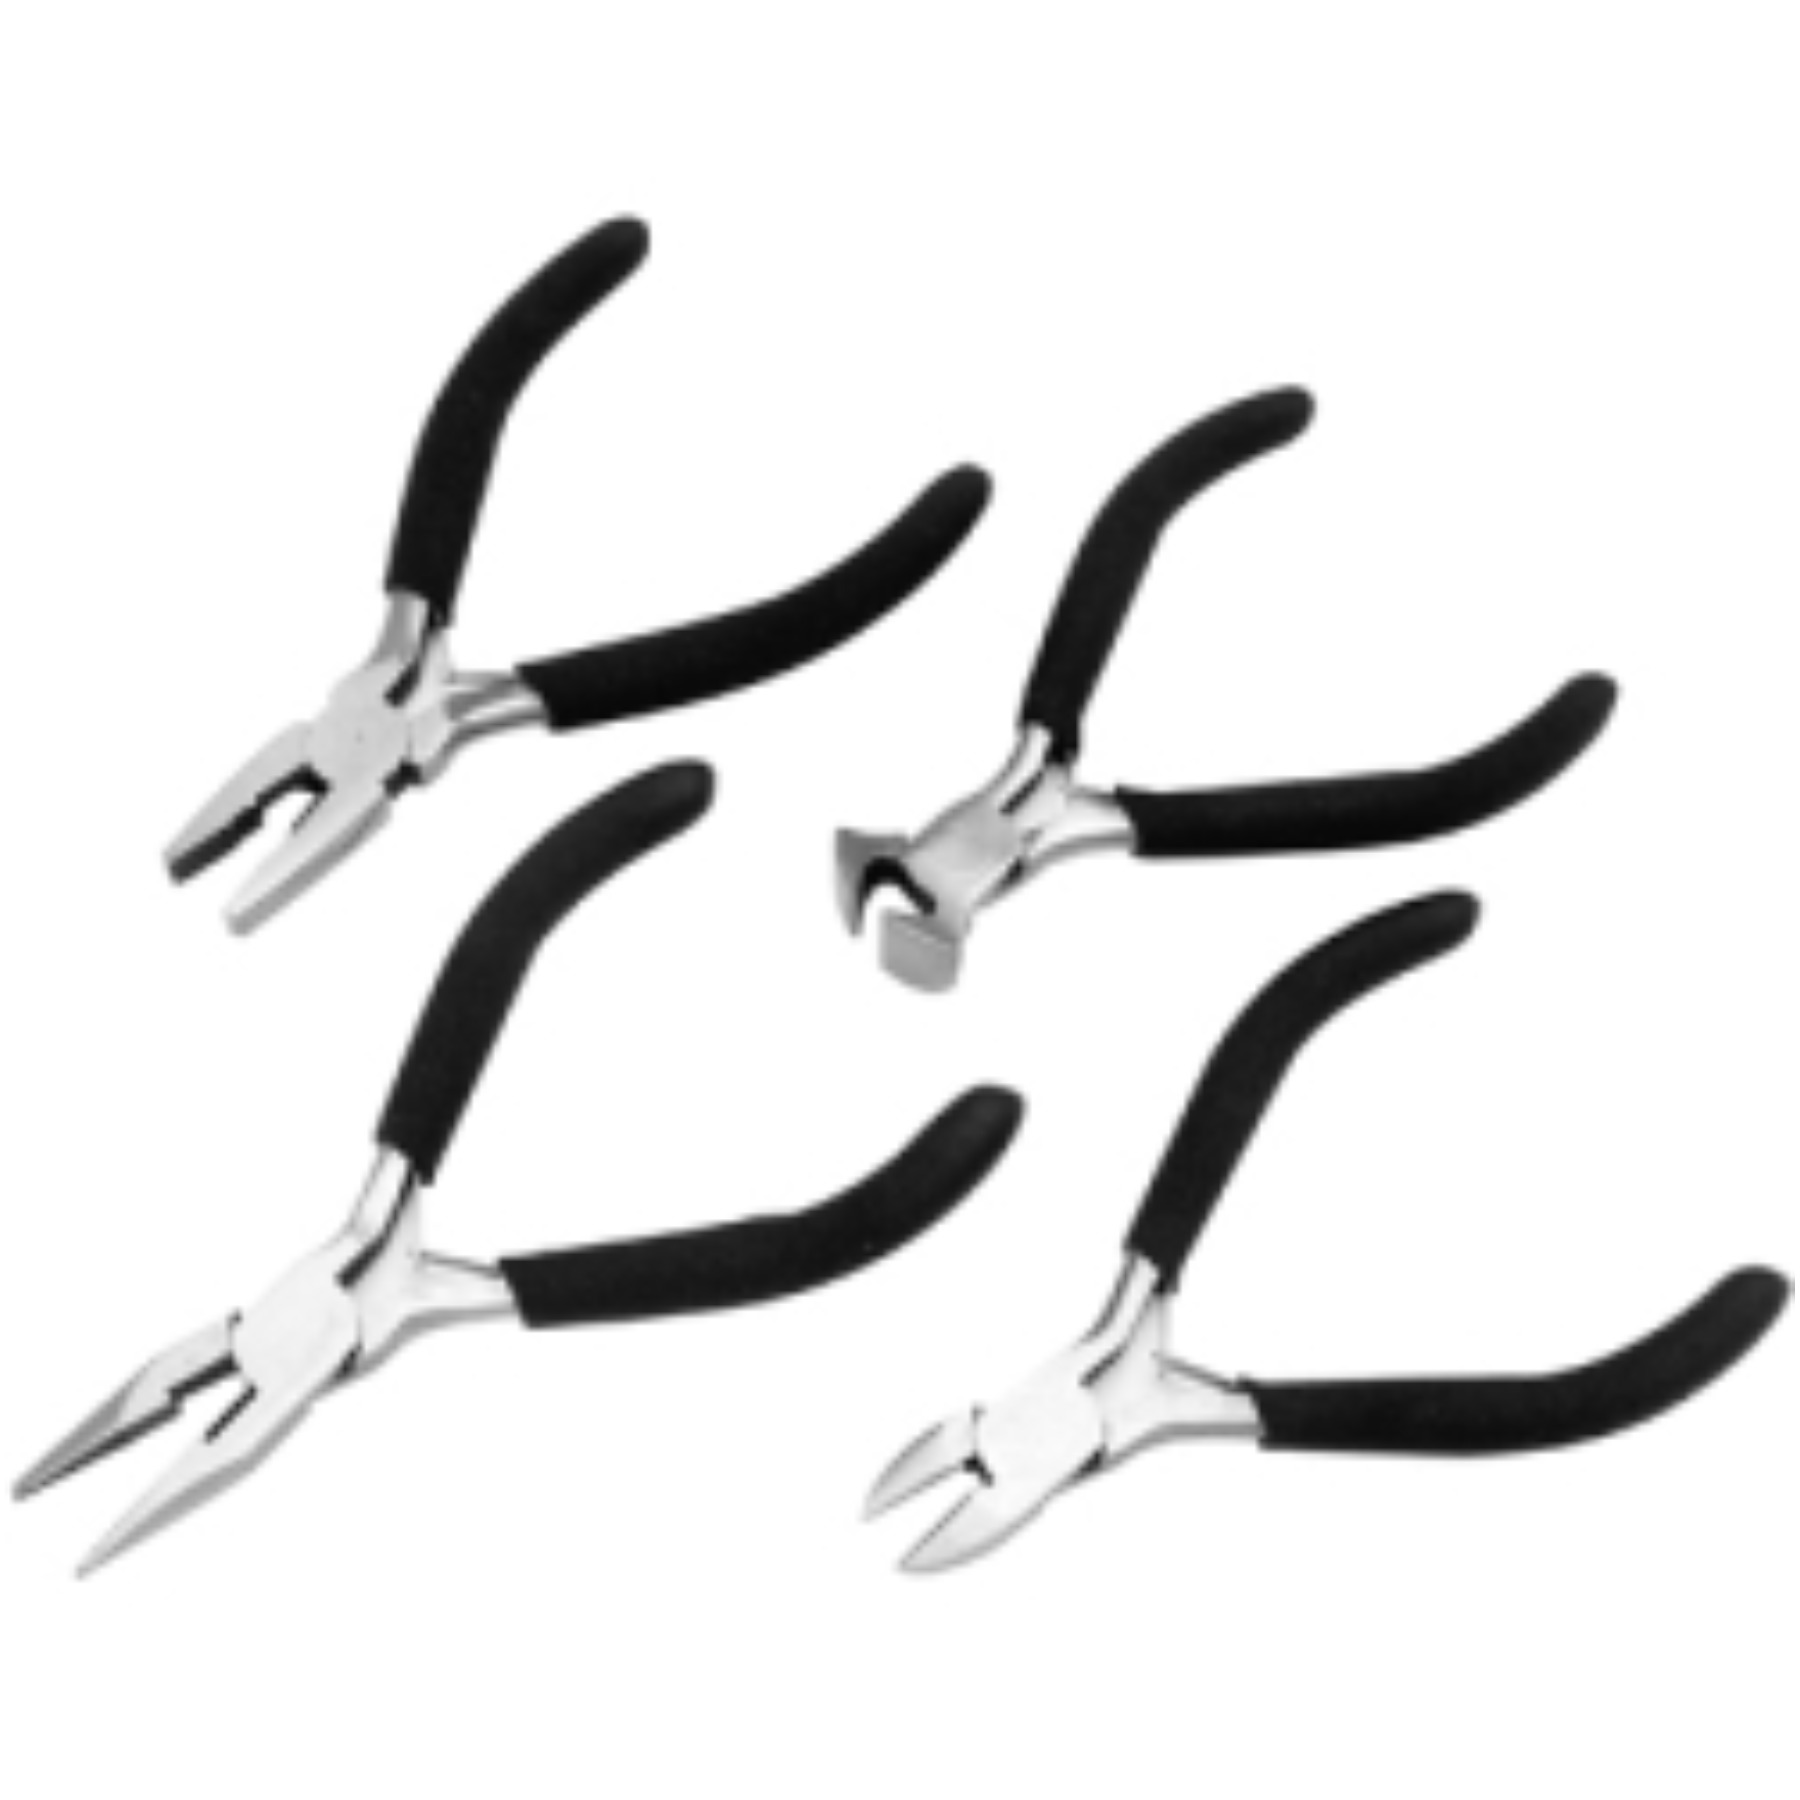 4 PC MINI PLIERS SET